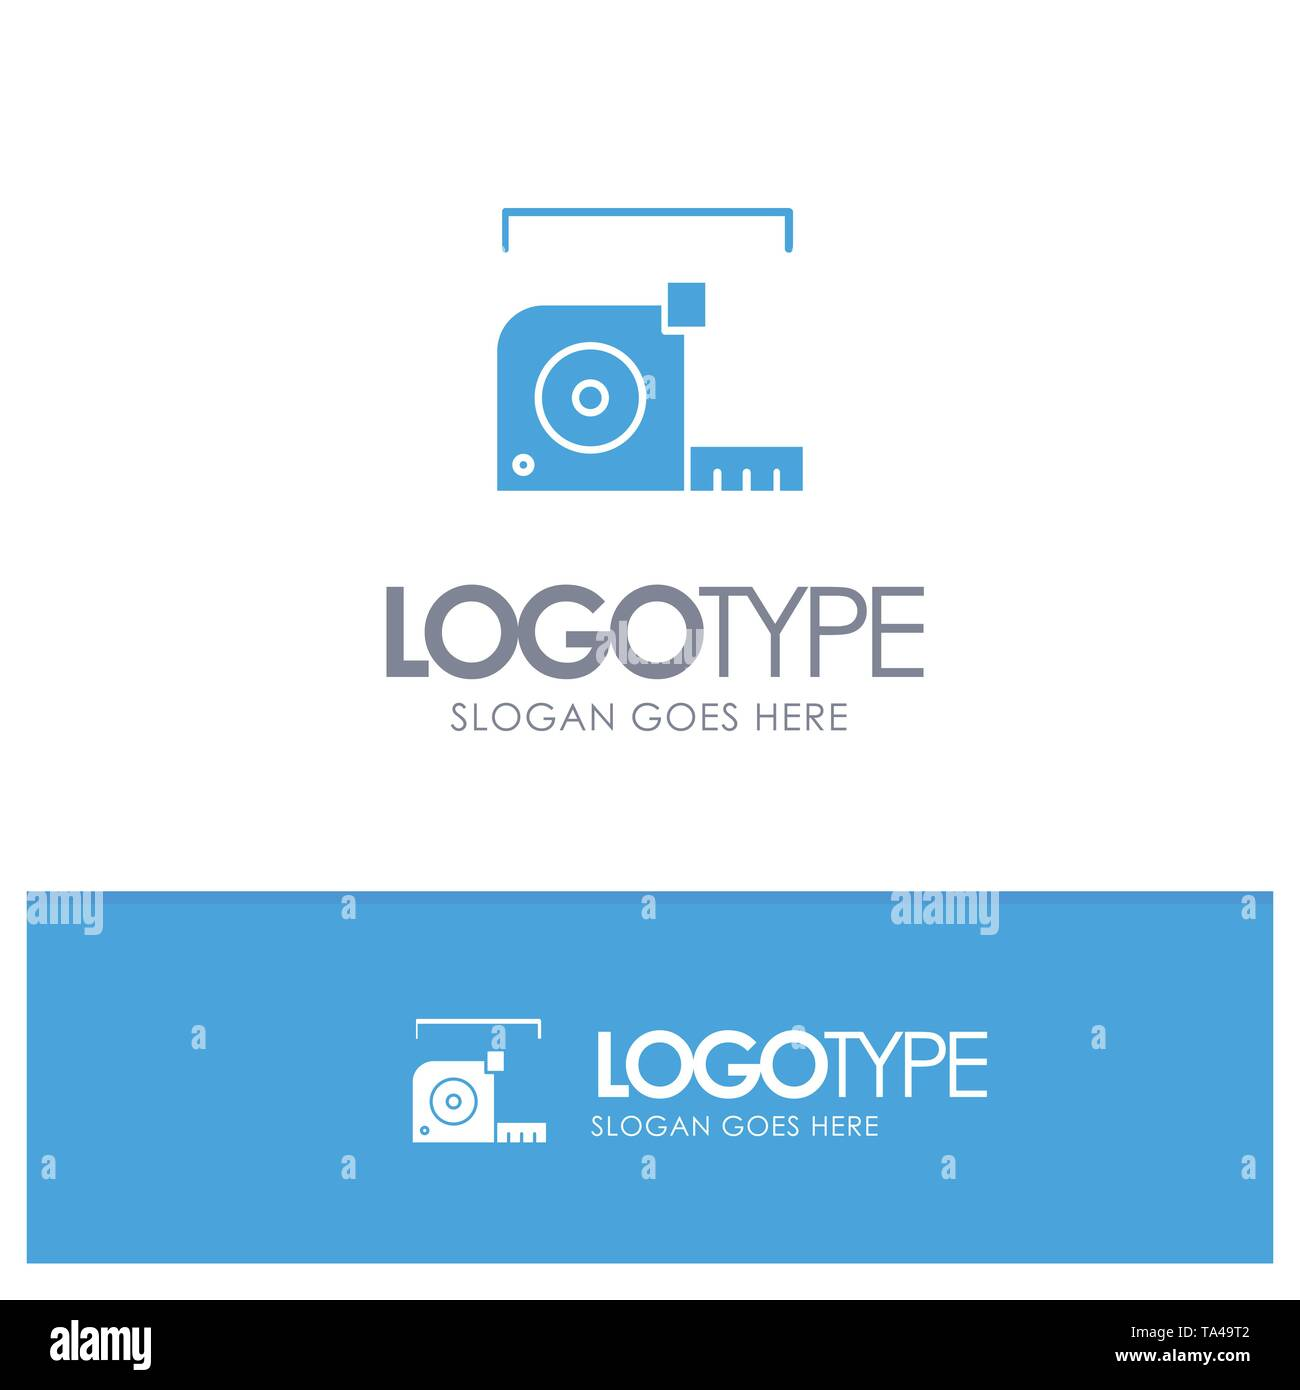 Measure, Measurement, Meter, Roulette, Ruler Blue Solid Logo with place for tagline - Stock Image